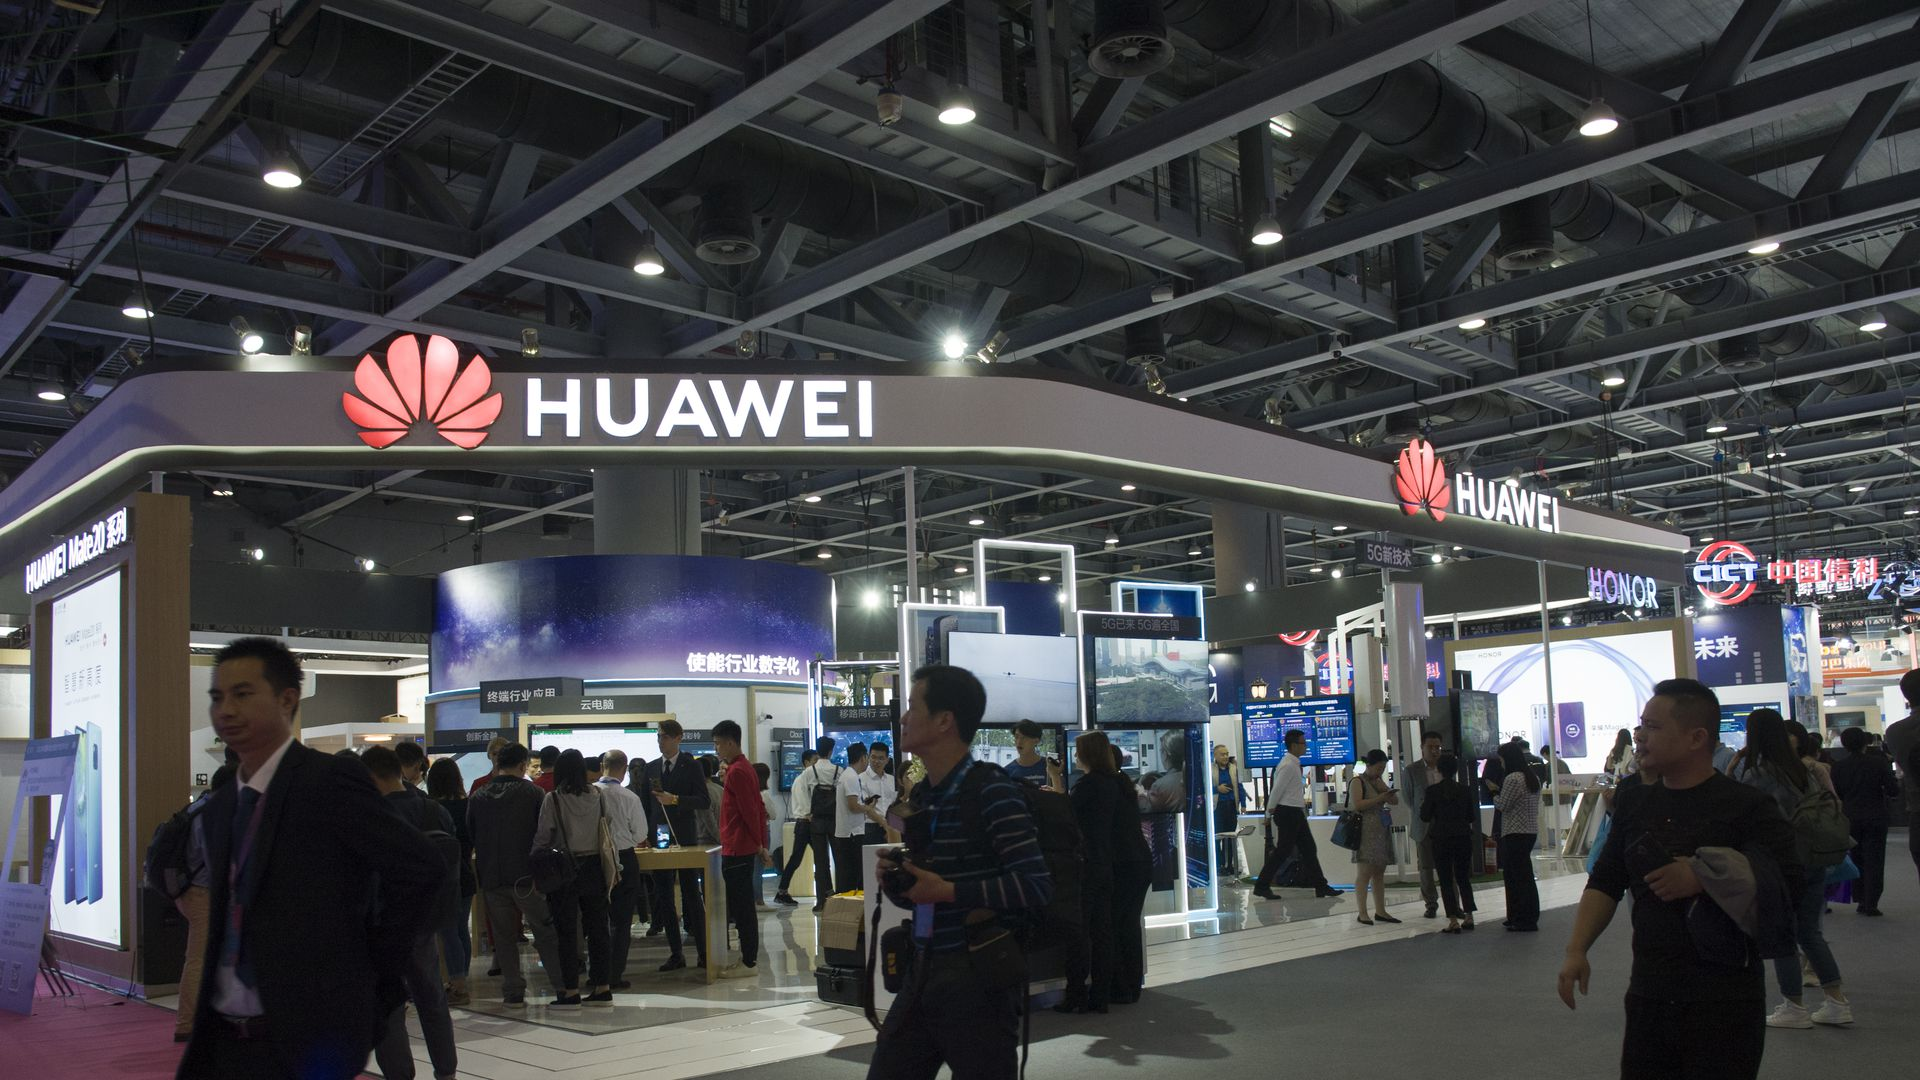 Huawei booth at a mobile tech conference.